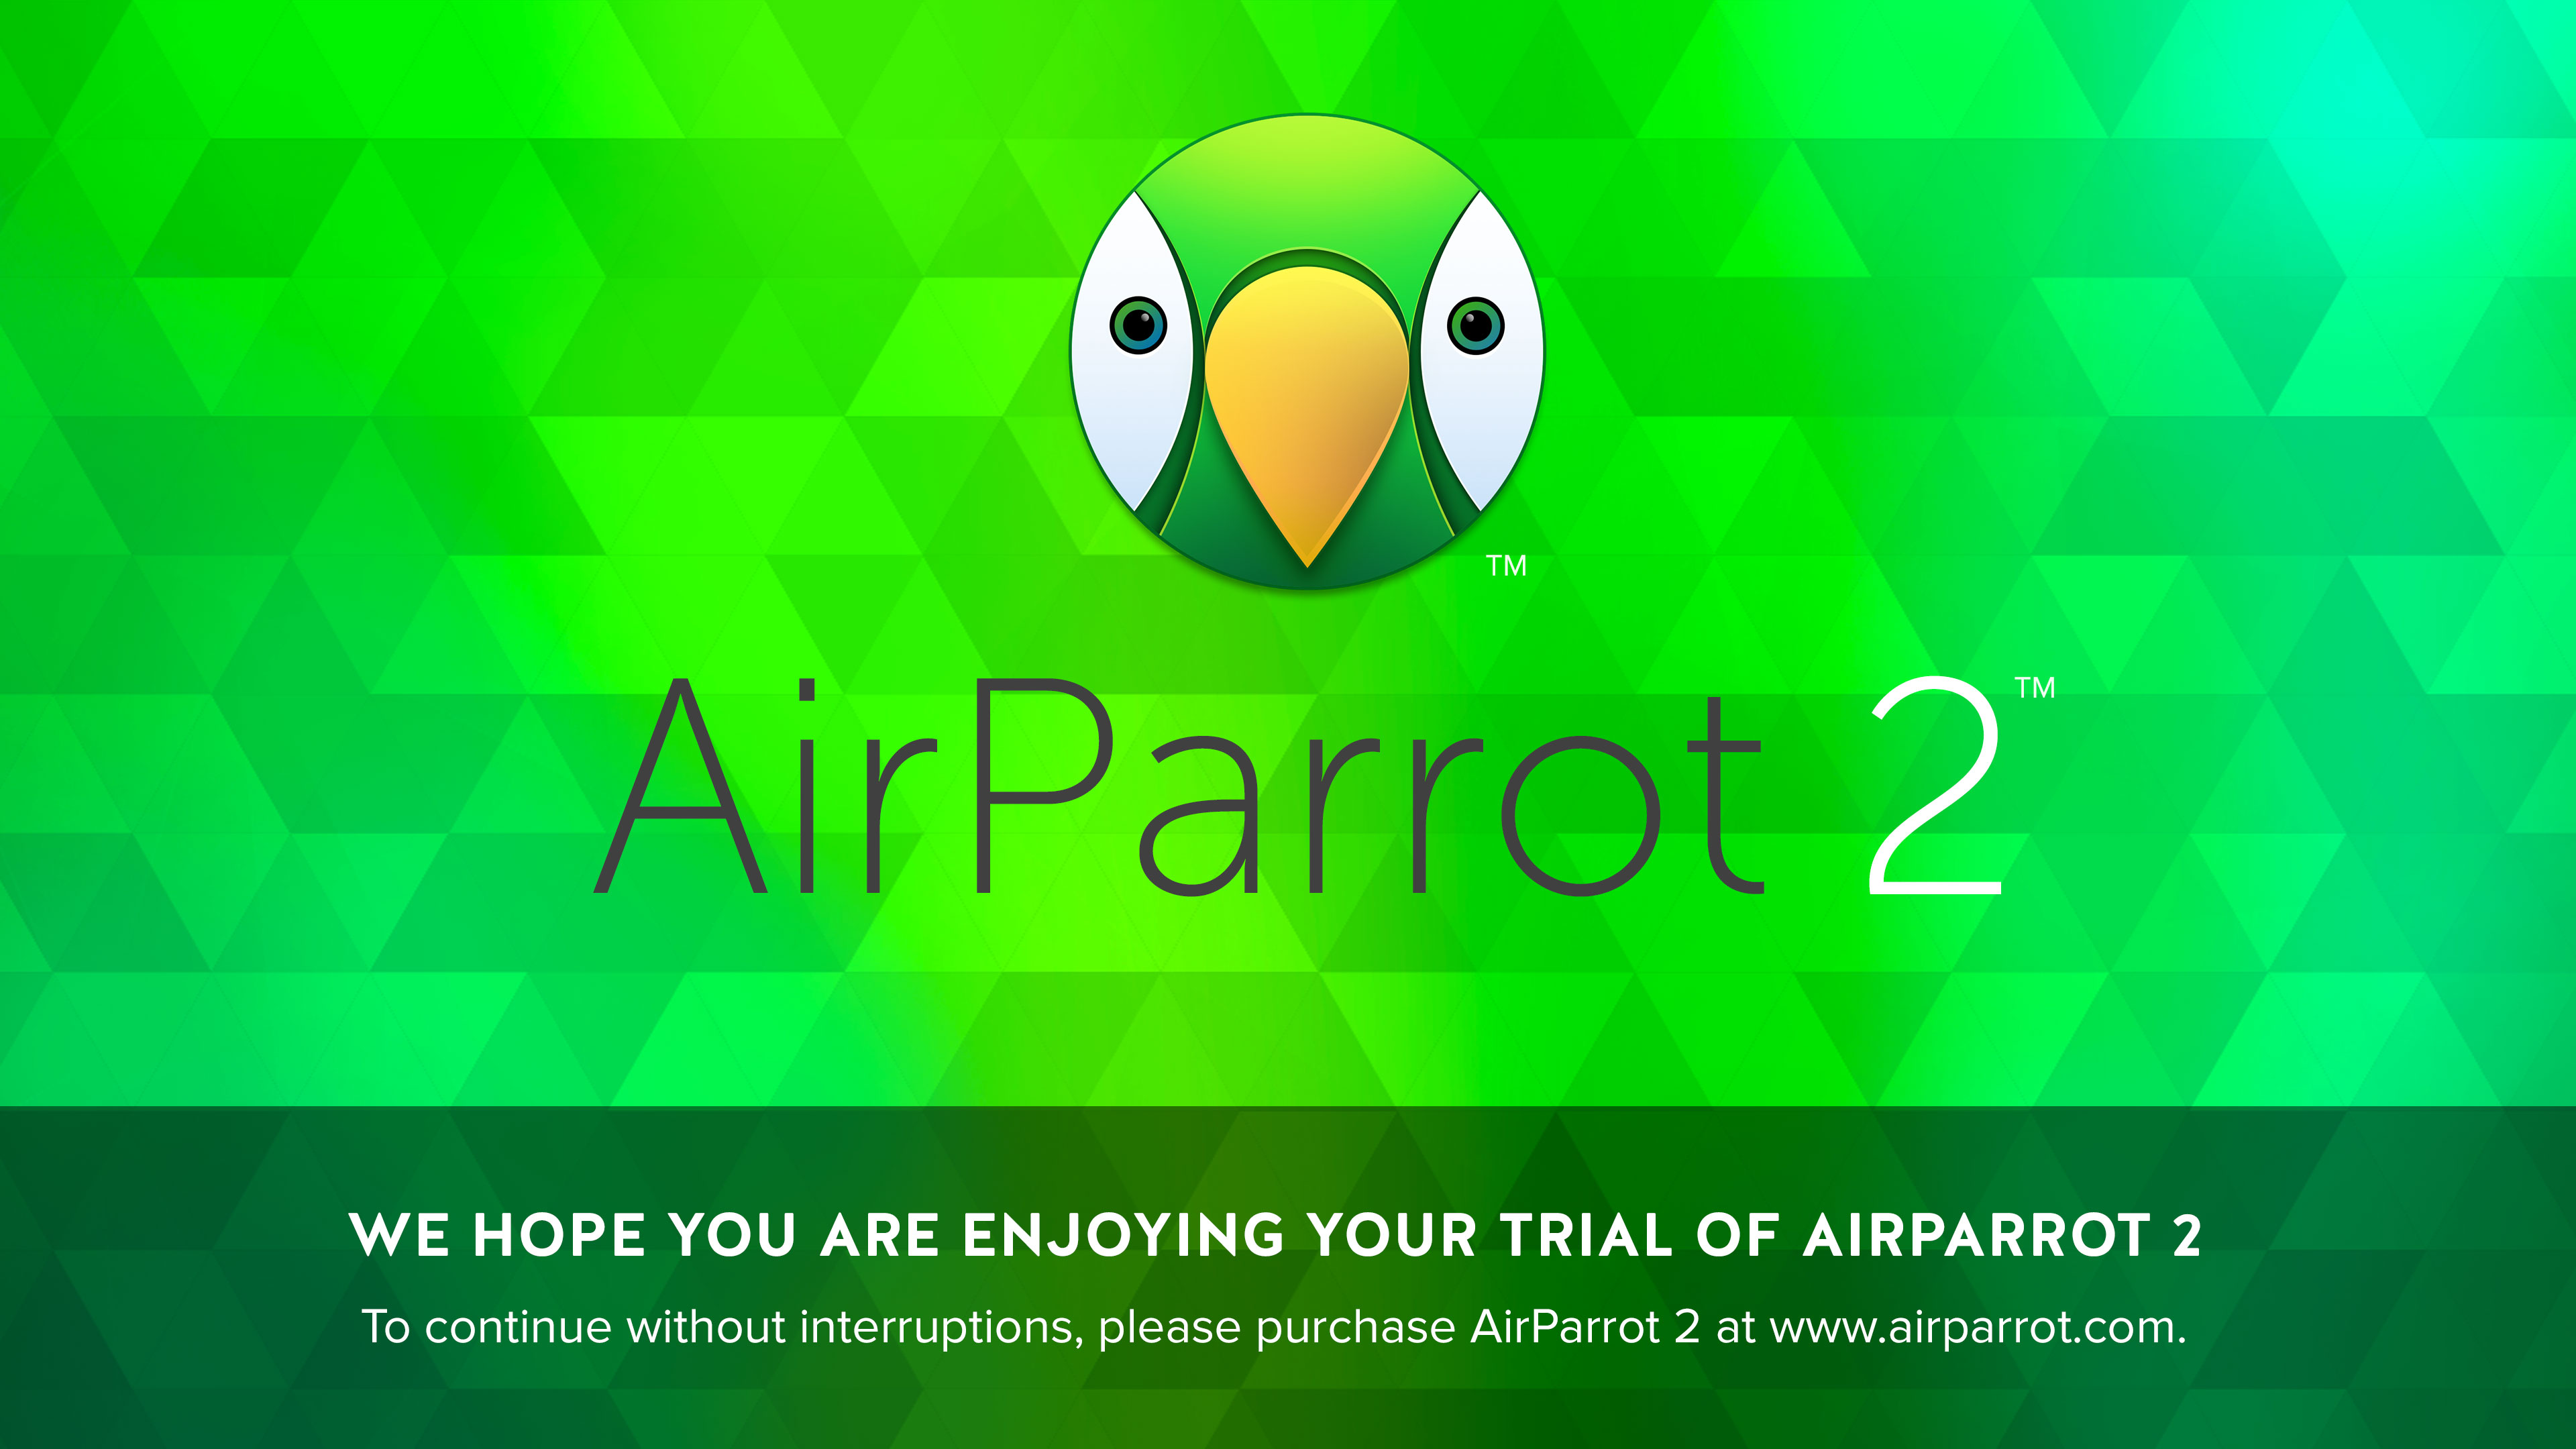 AirParrot Trial